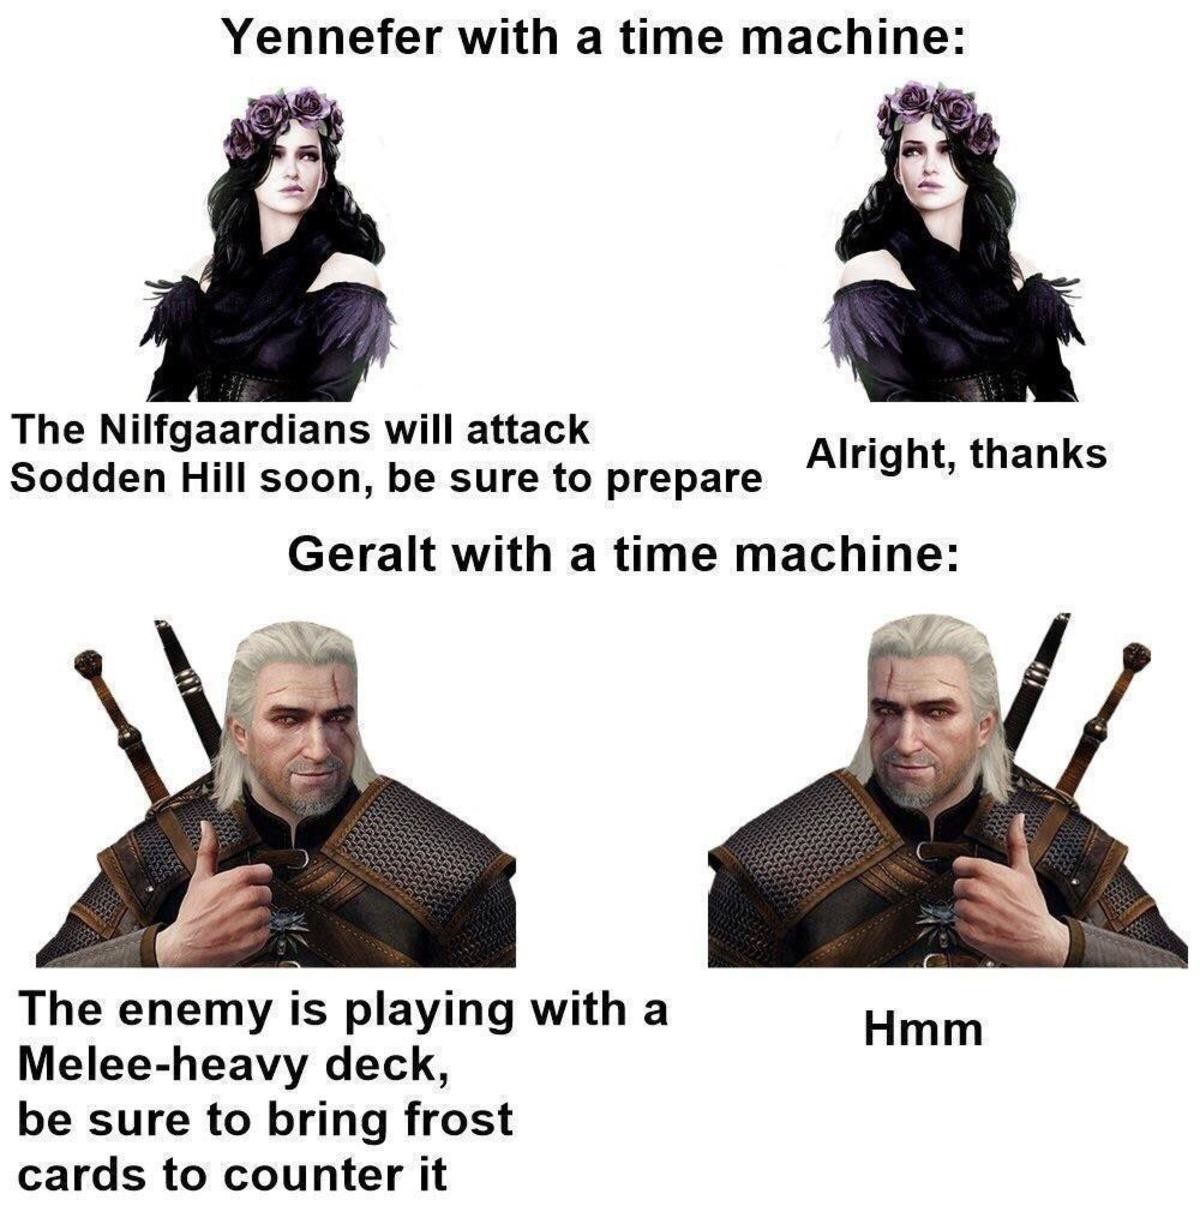 noxious Pony. .. Geralt is a witcher sworn to neutrality. Yen is a member of witch conclave whose entire purpose is to puppet nations. Priorities seem about where they should be